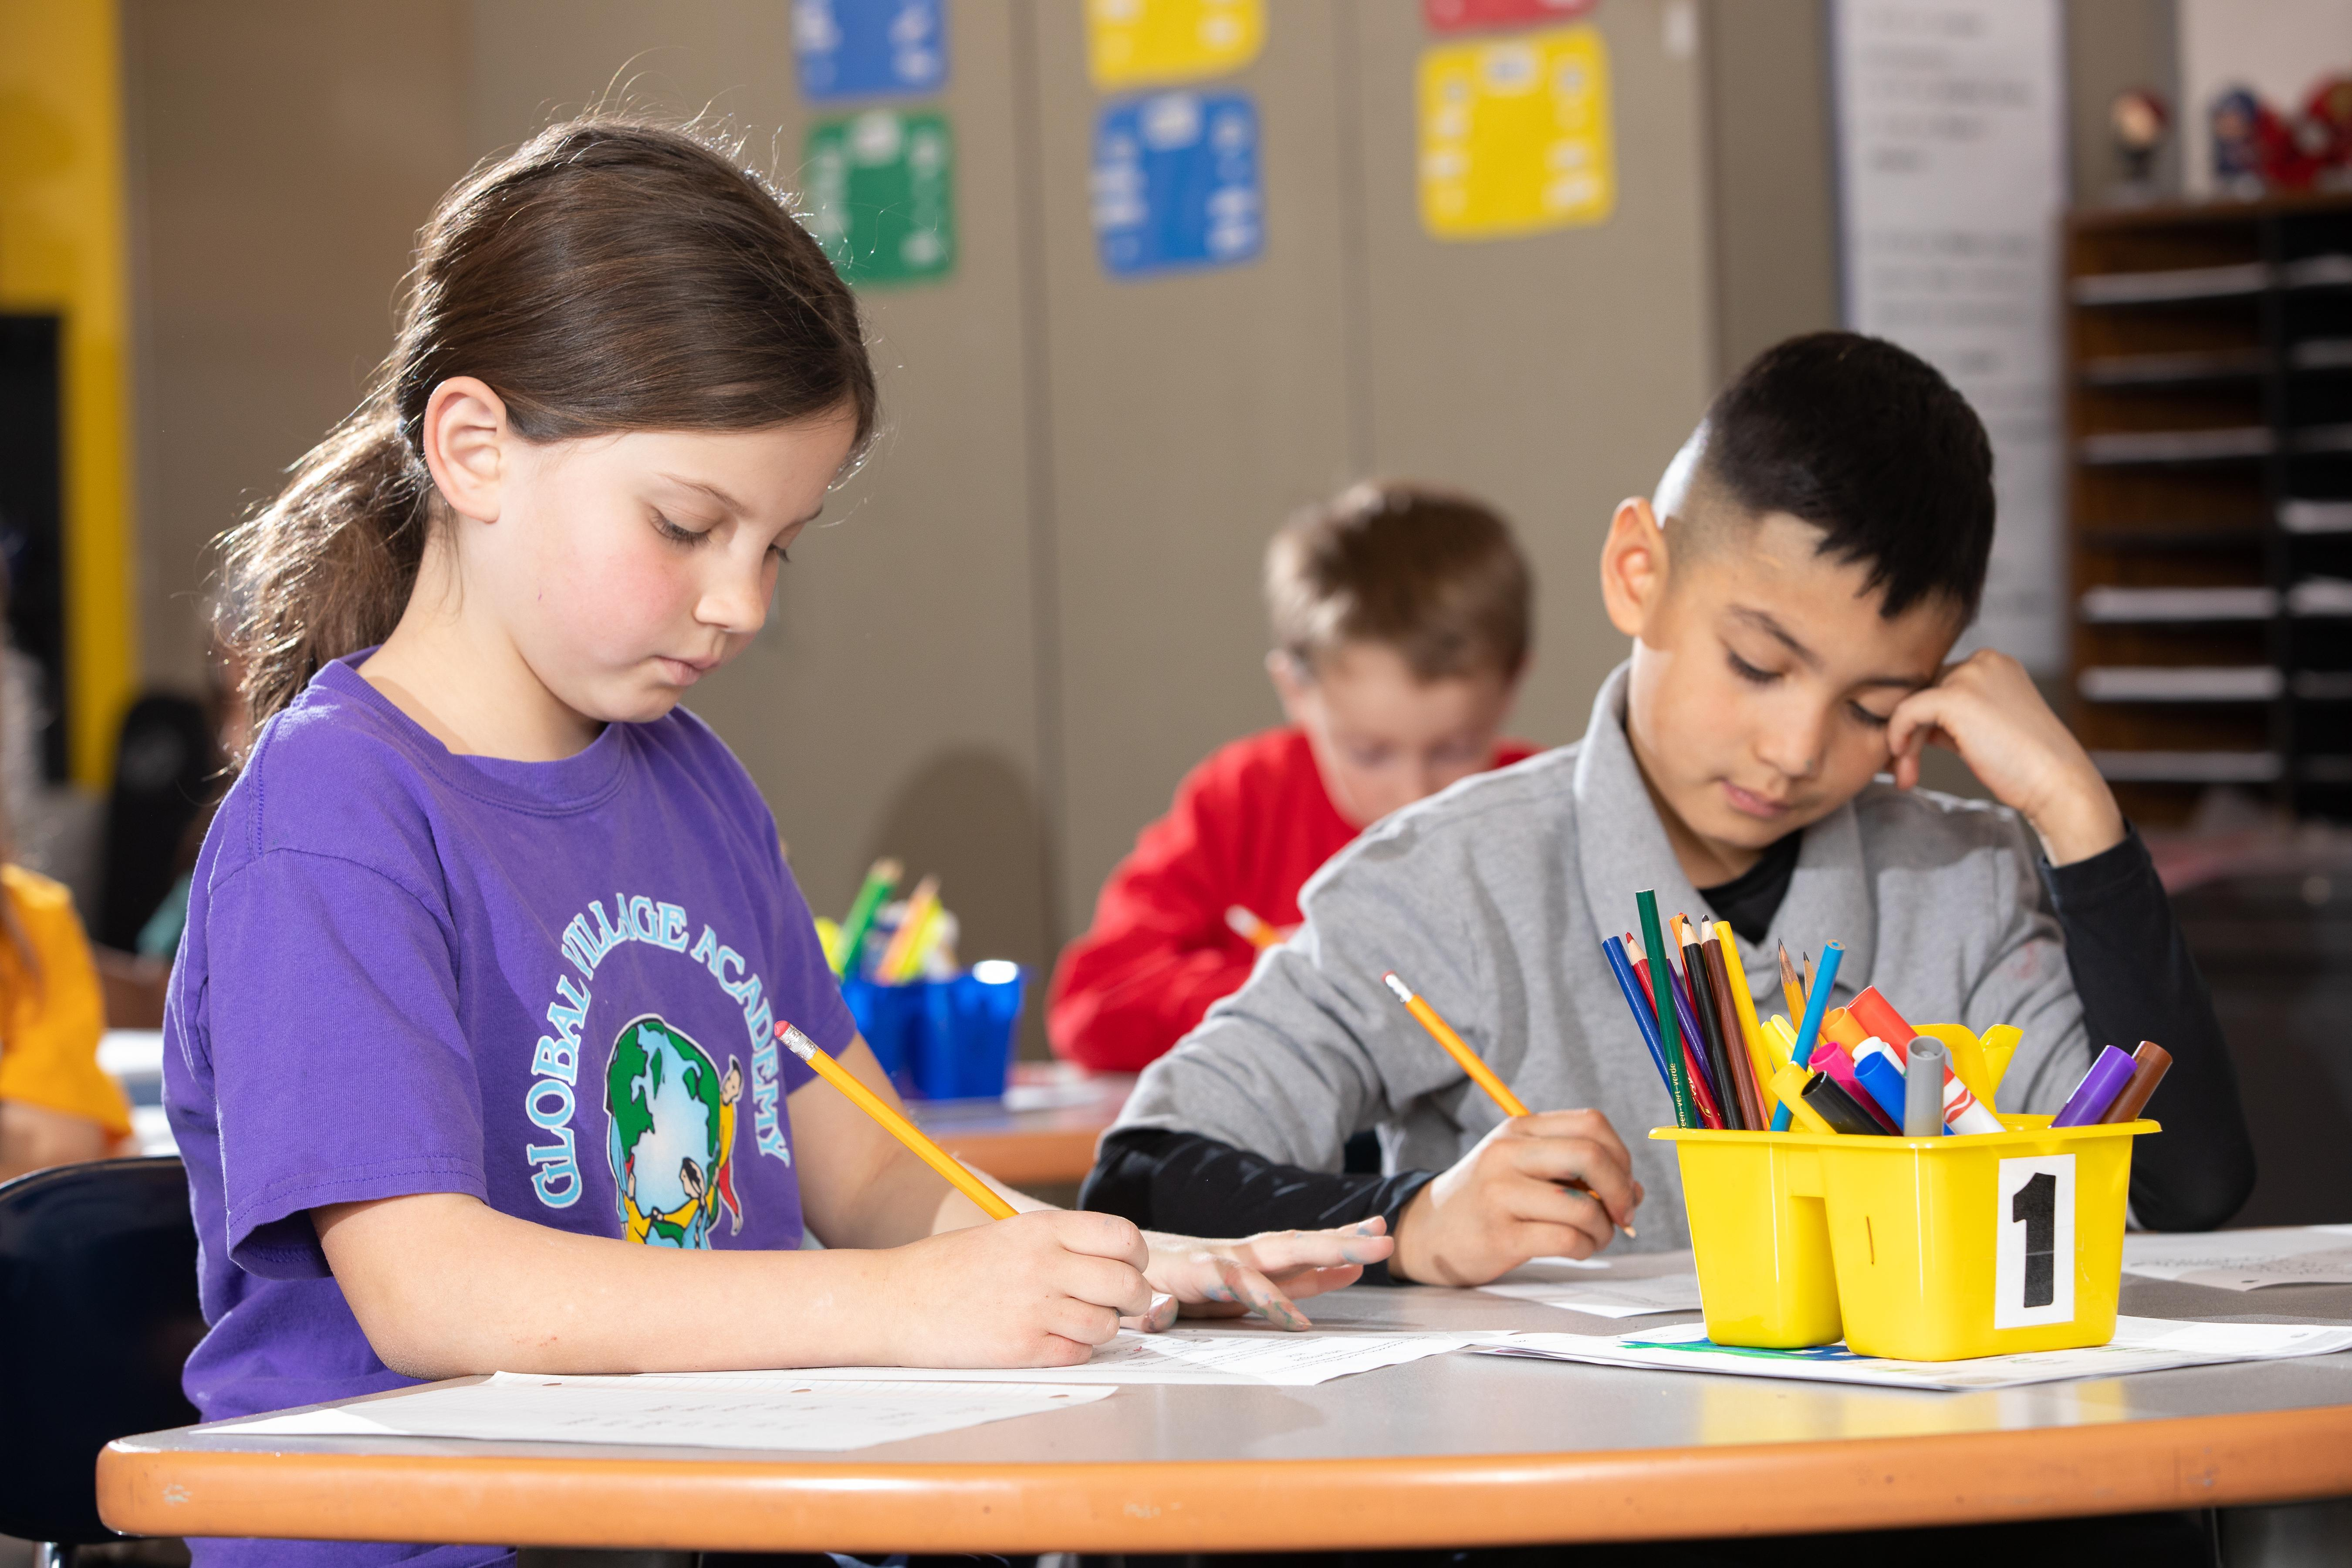 students in a classroom working